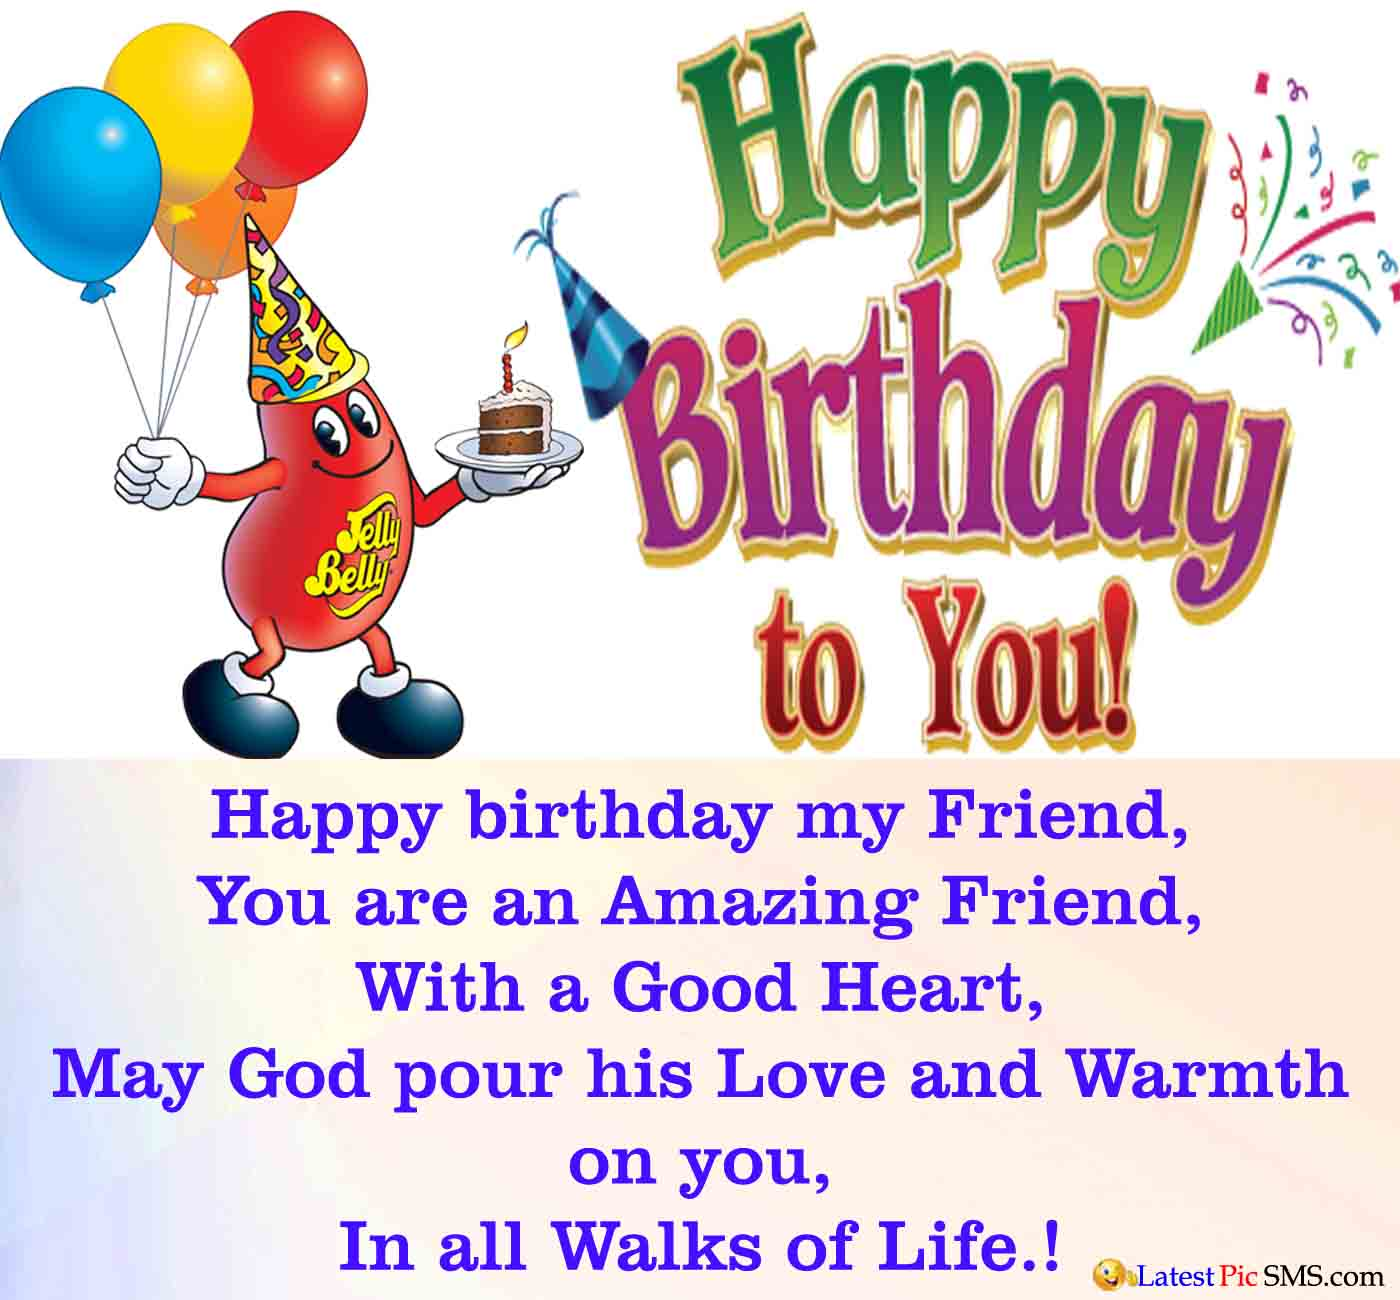 Birthday Wishes For A Friend On Facebook